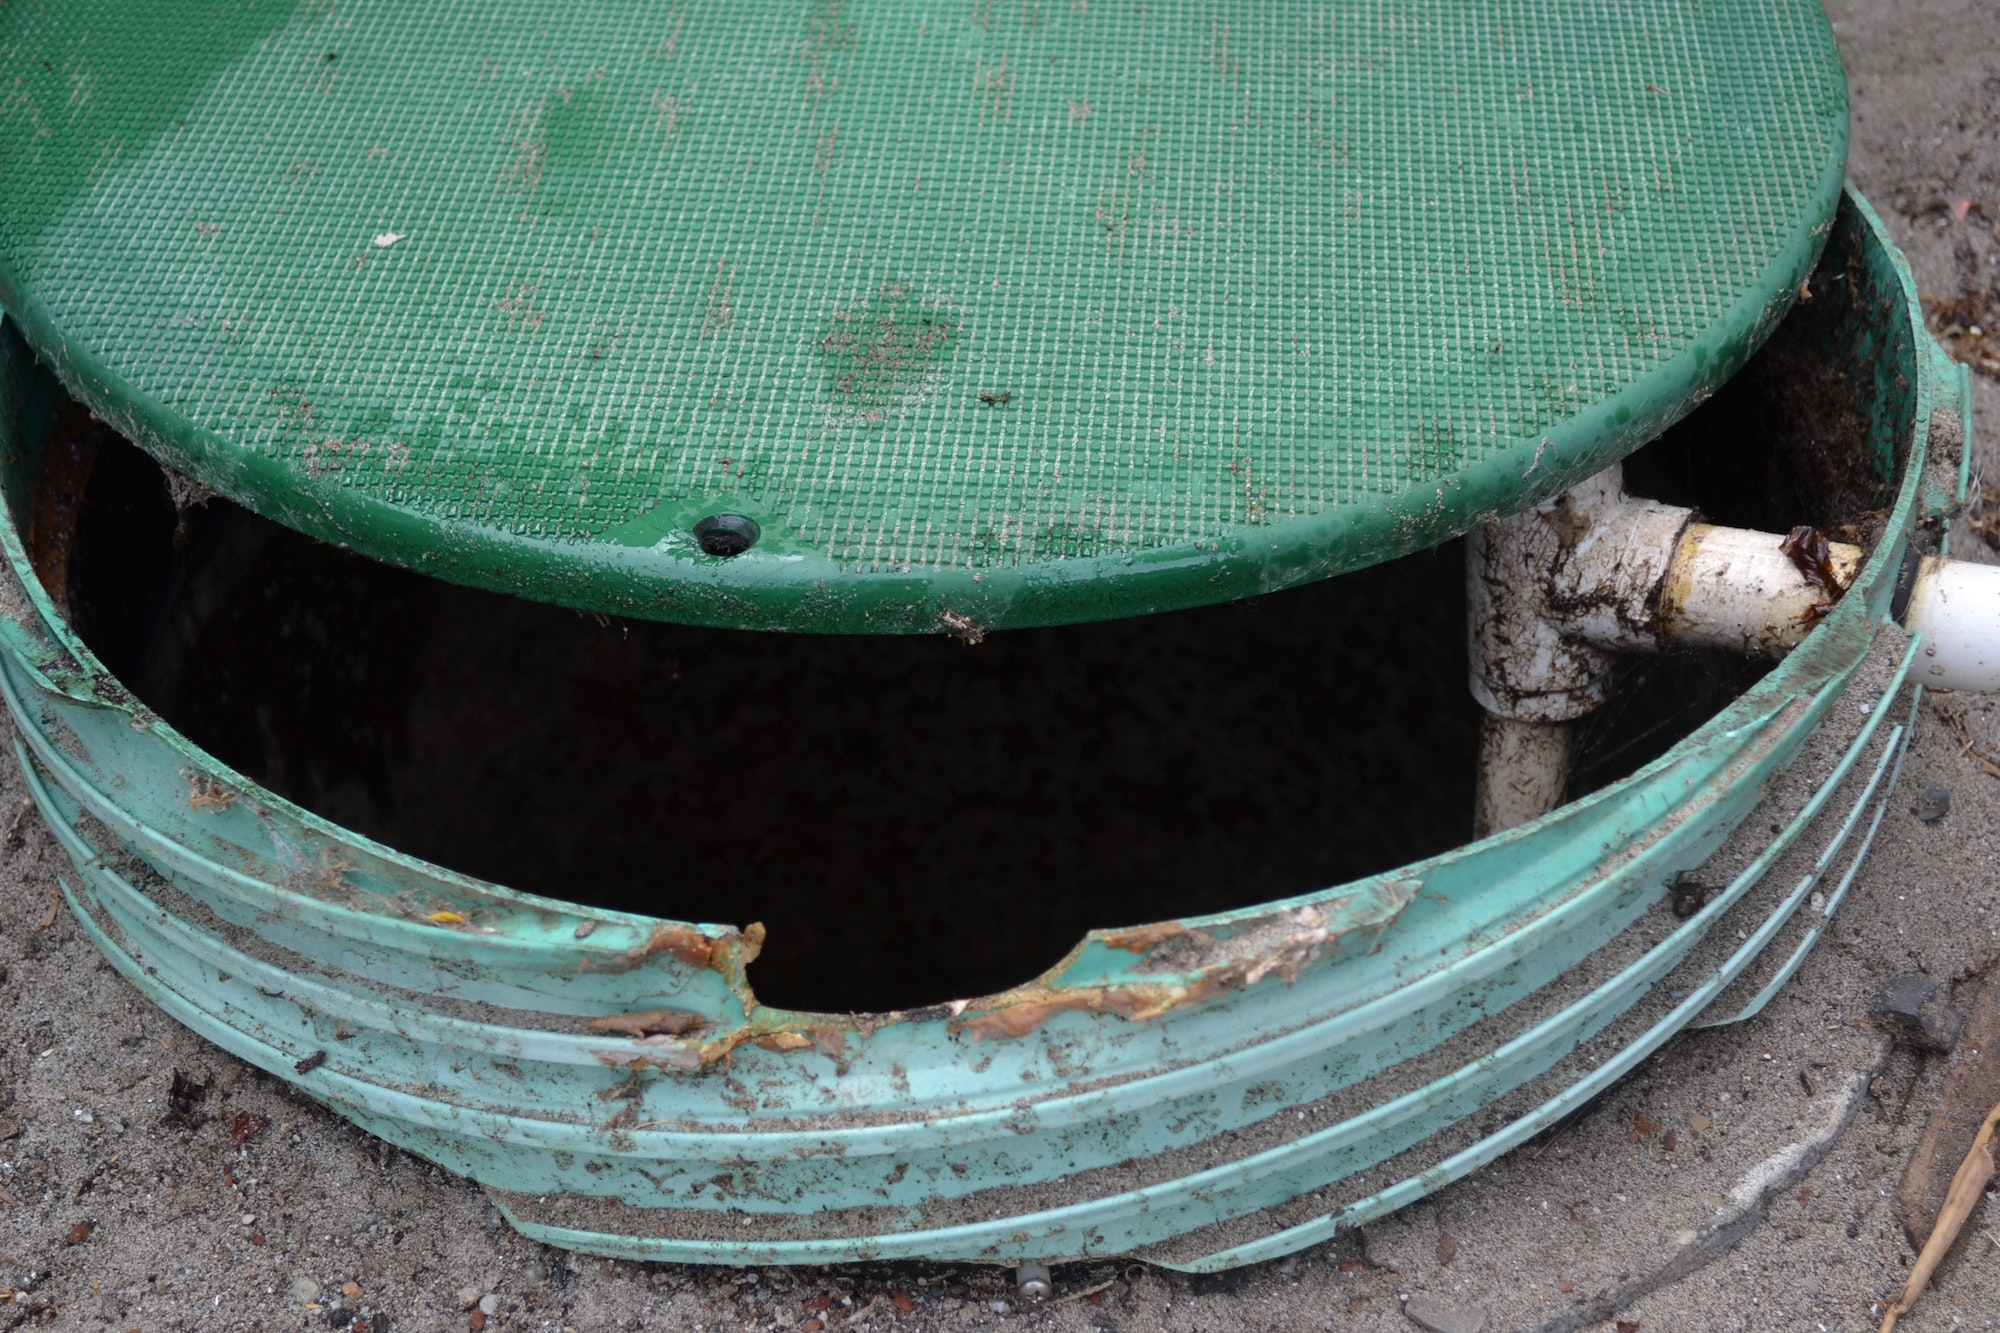 Septic with chip on riser